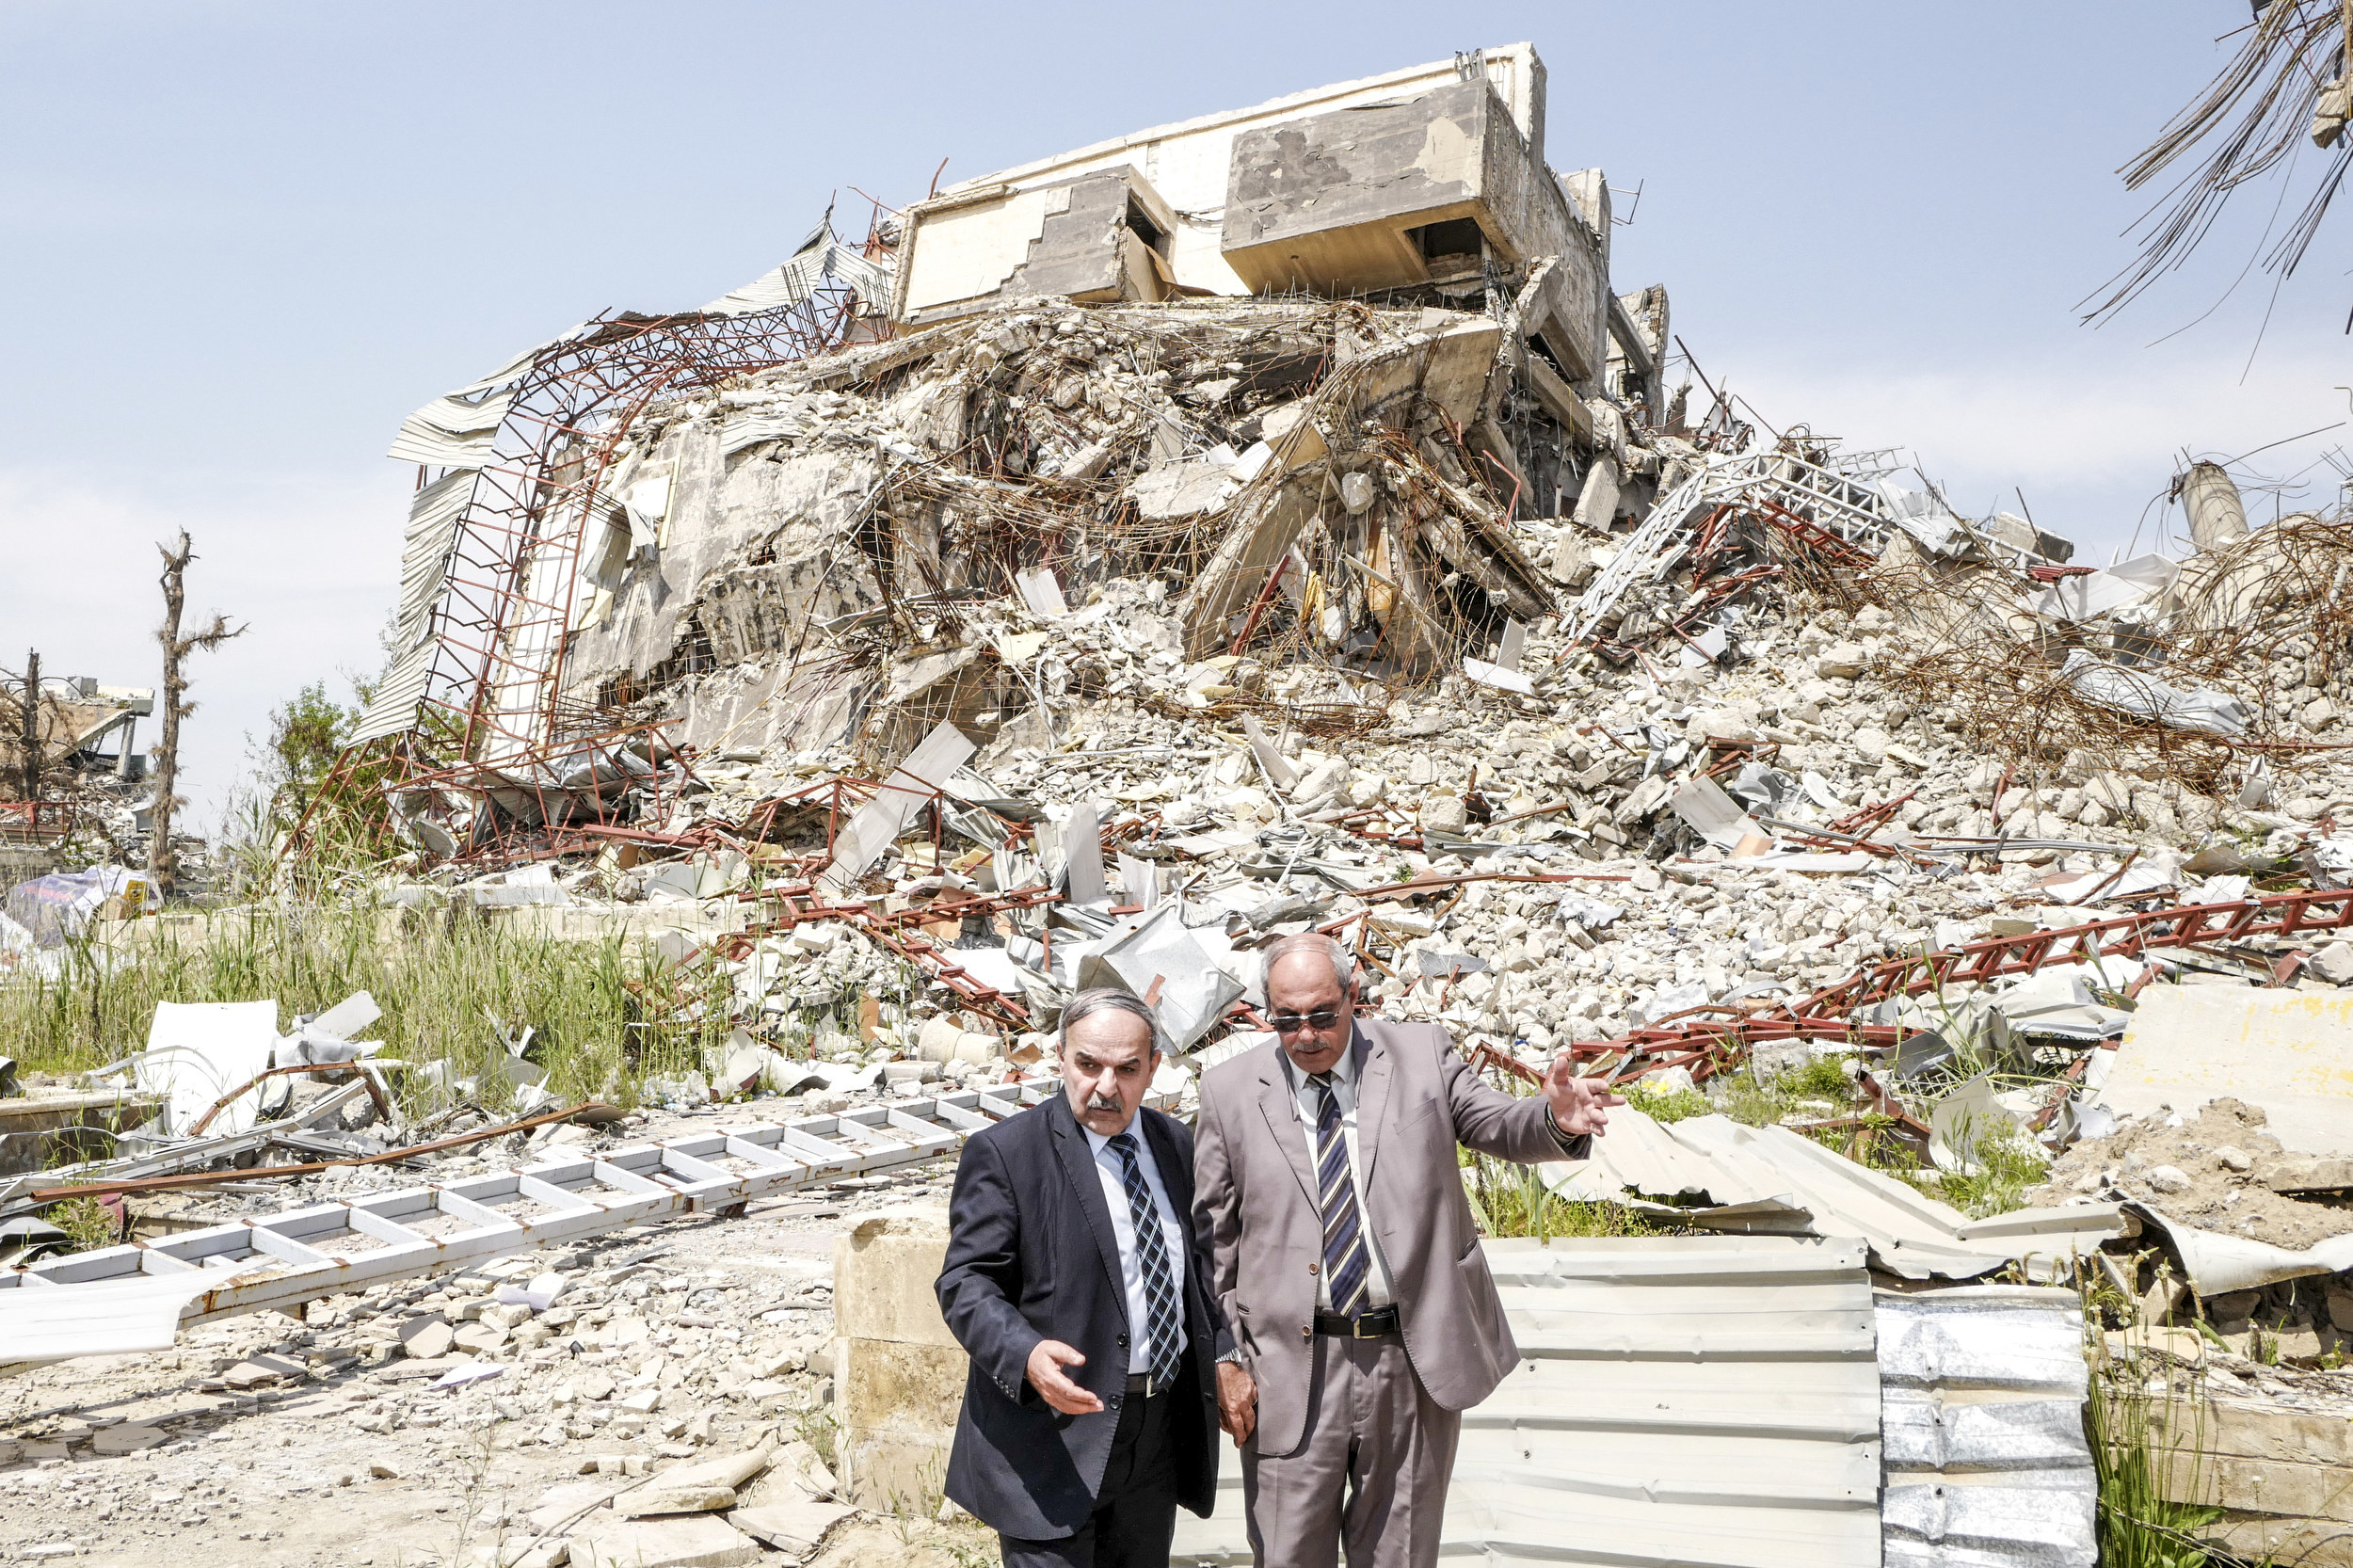 Two men in suits in front of a massive pile of rubble